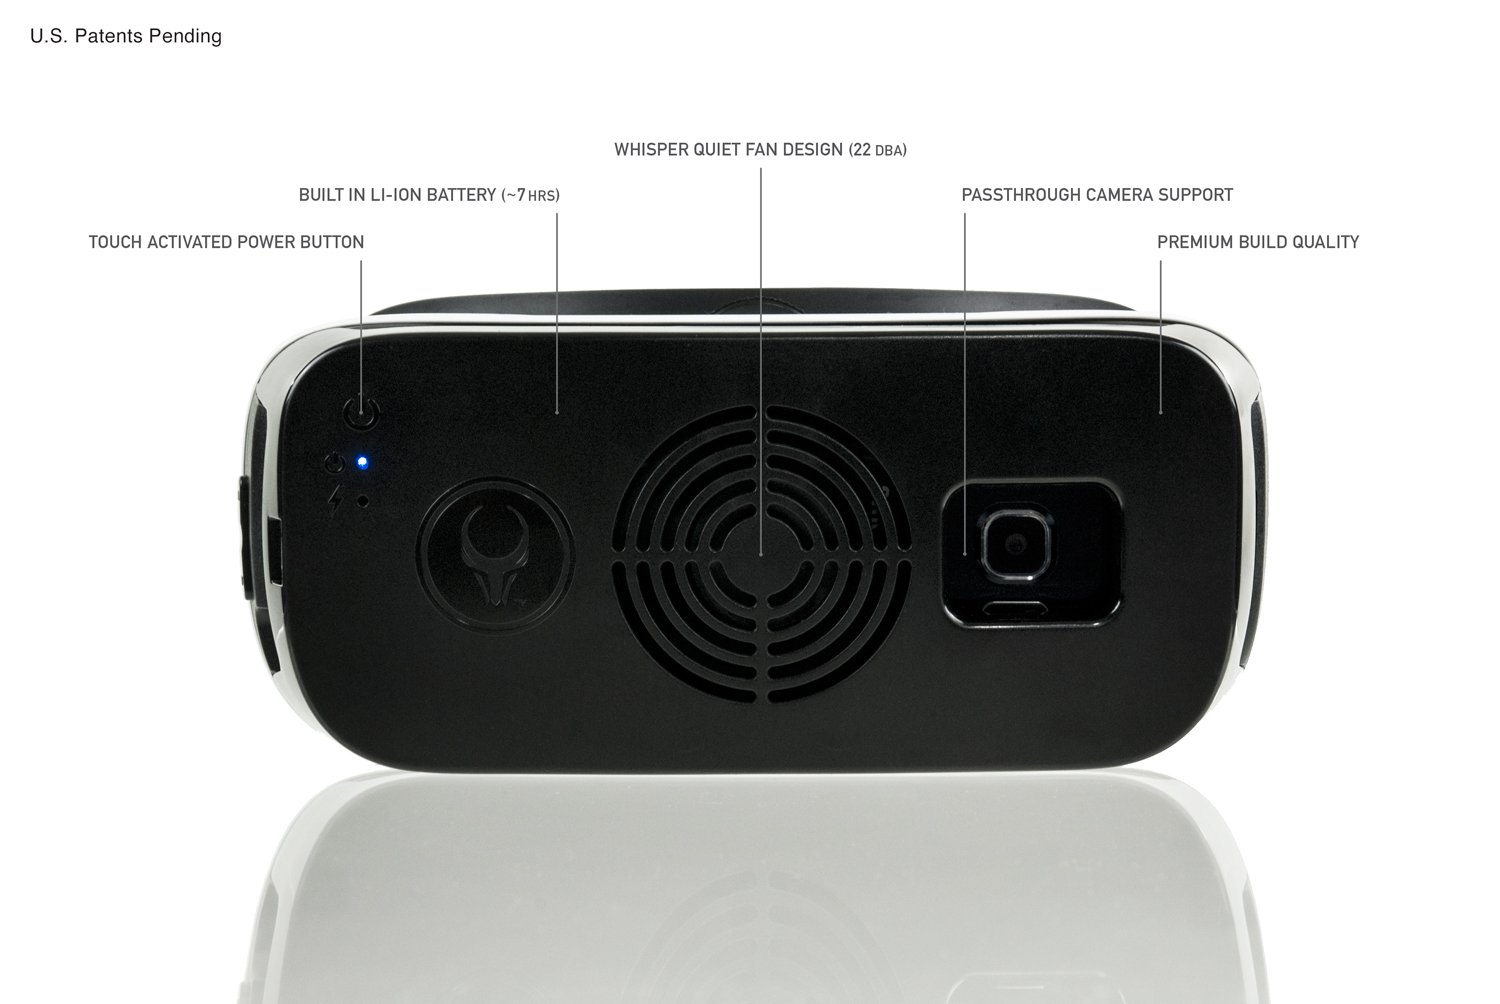 Samsung Gear VR Cooling Fan (COMPATIBLE W/ WHITE 2015 consumer edition gen. 3 - SM-R322 ONLY) Satori VR Fan w/ built-in rechargeable battery by Asterion Products (Samsung Gear VR NOT included) by Asterion Products (Image #4)